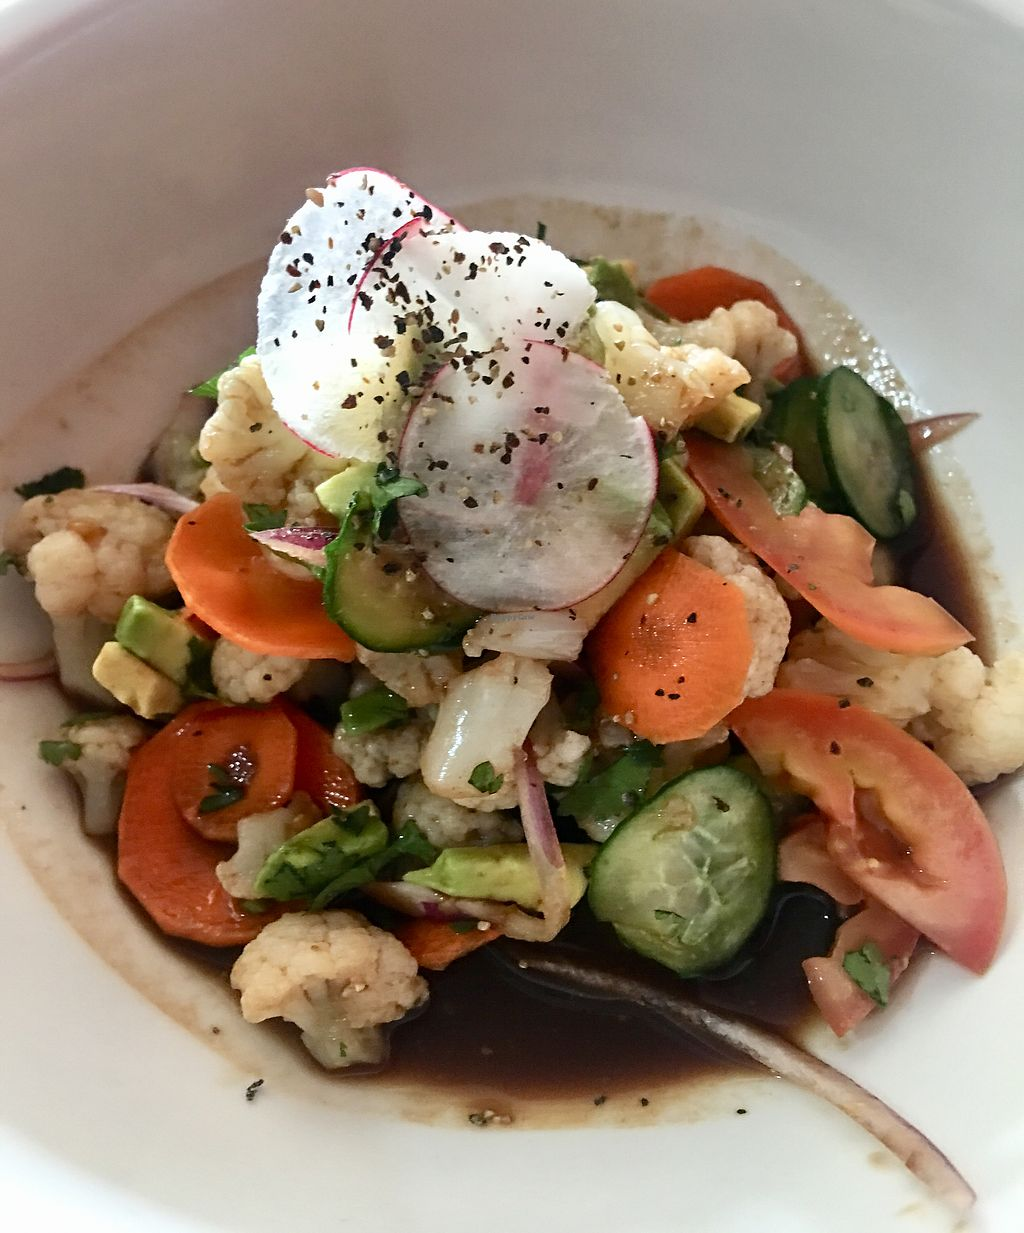 """Photo of Inspiracion 9  by <a href=""""/members/profile/ChereseTarter"""">ChereseTarter</a> <br/>Vegan ceviche  <br/> April 1, 2018  - <a href='/contact/abuse/image/89812/379200'>Report</a>"""